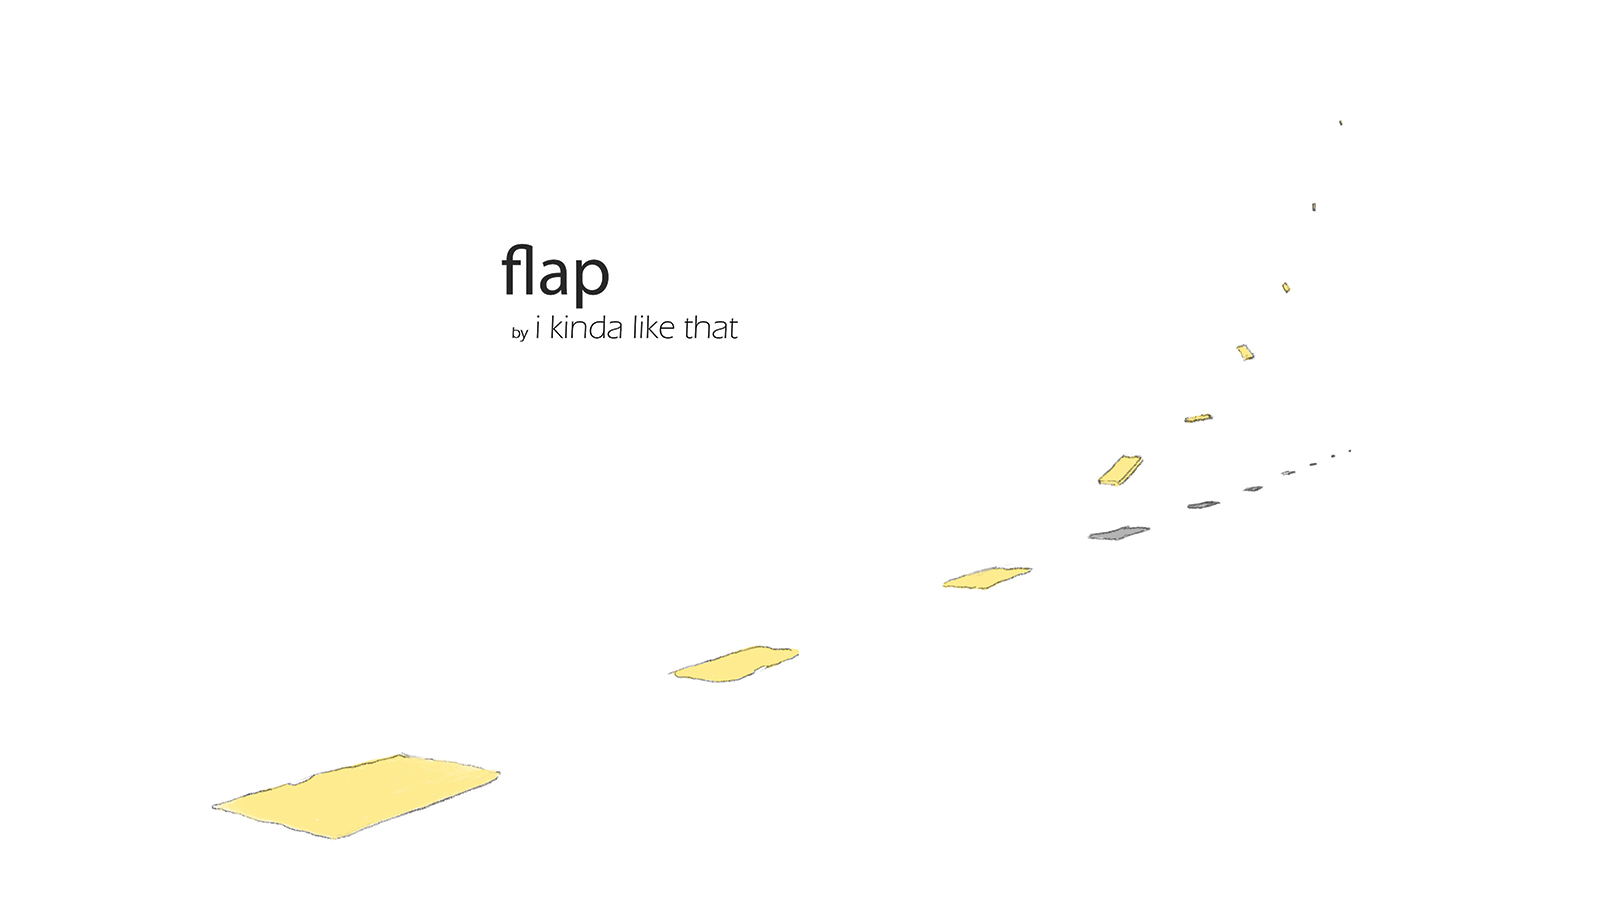 Title page for Flap by i kinda like that.